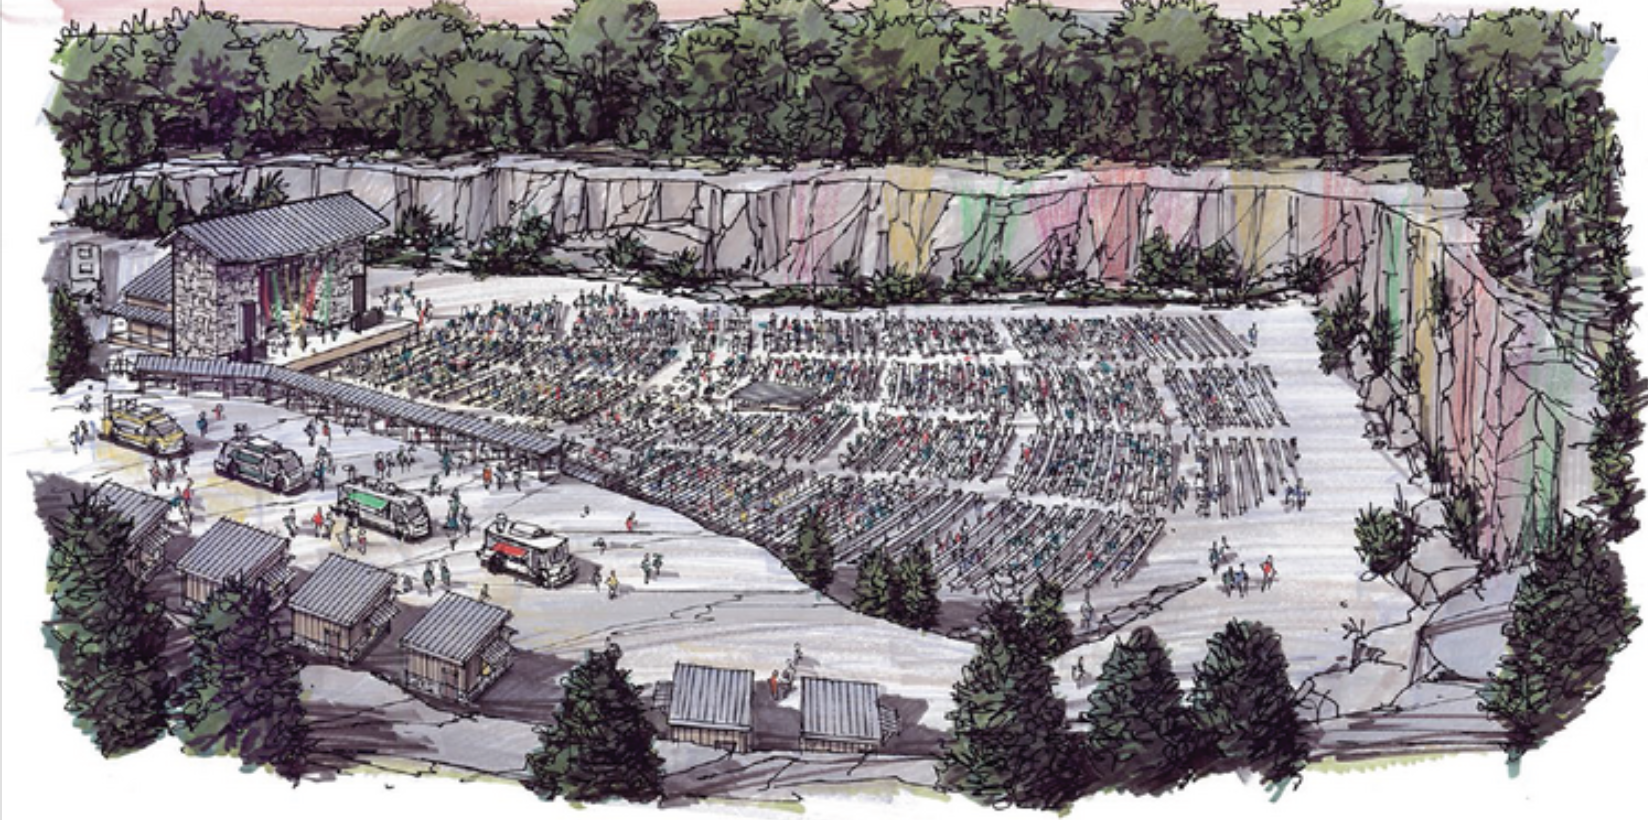 From bizjournals.com— a 2015 rendering depicts the amphitheater planned at Graystone Quarry, in Thompson's Station.